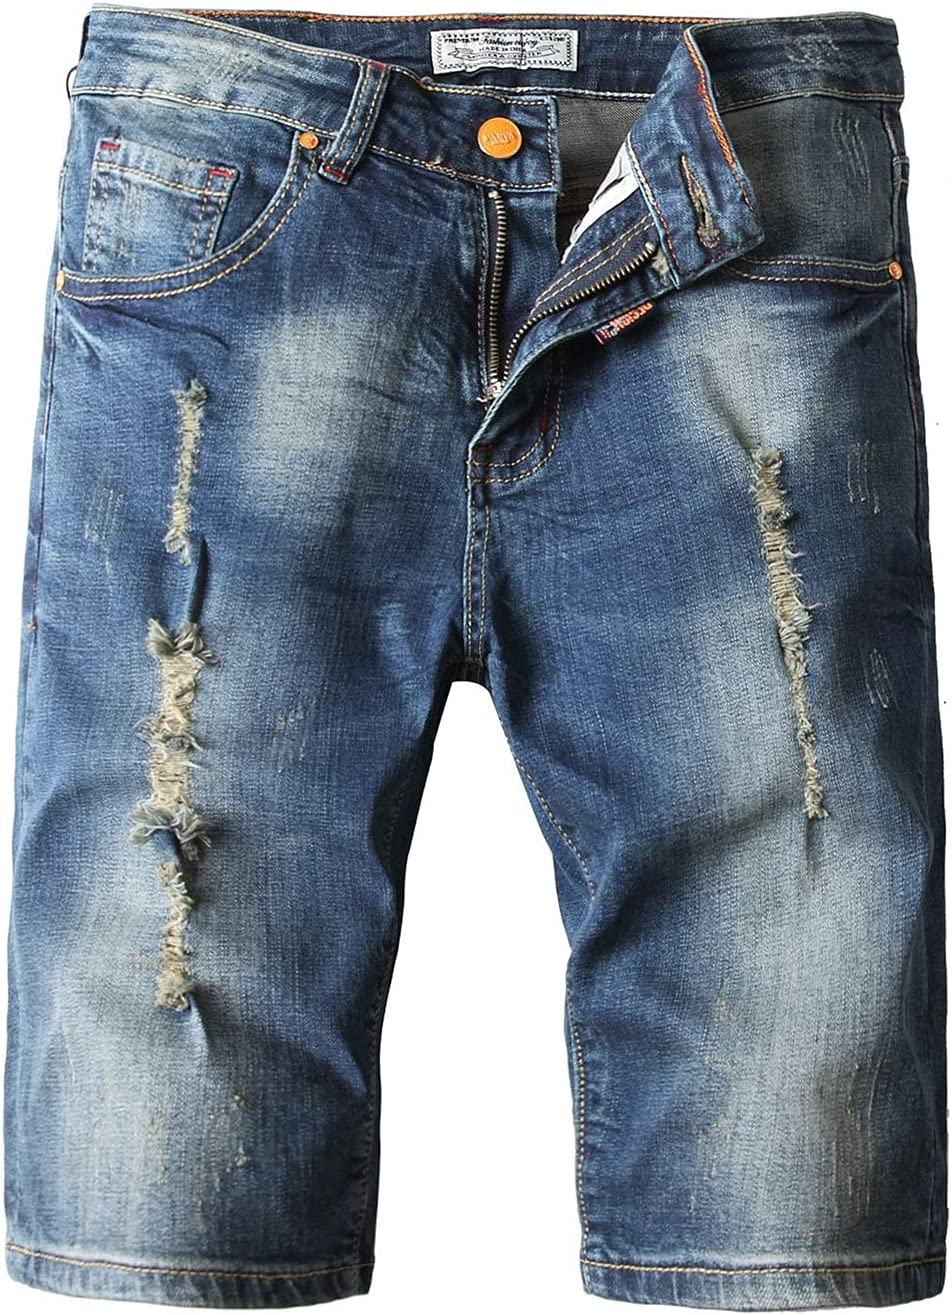 Men's Slim Straight Jean Shorts Casual Summer Above Knee Length Ripped Jeans Destroyed Hole Distressed Jean Short Pants (Light Blue,38)